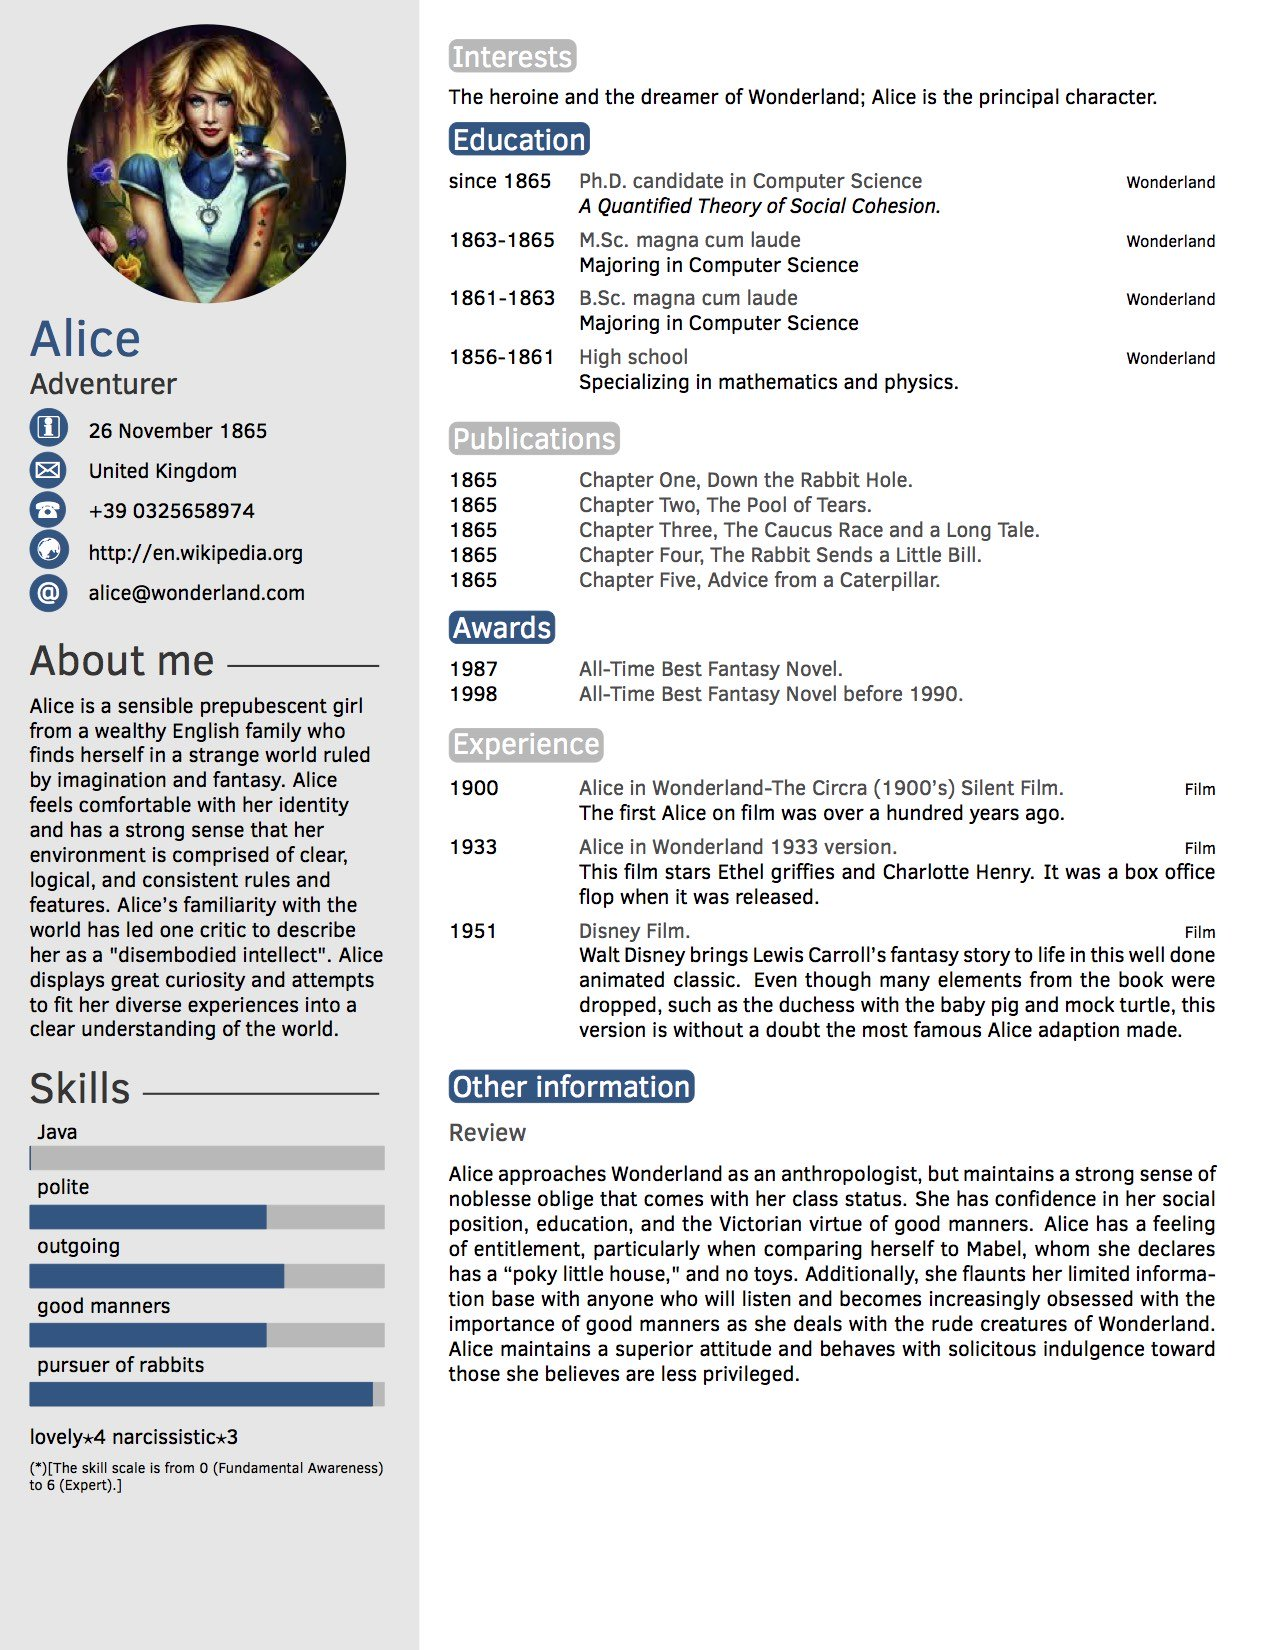 cv in tabular form resume format templates wisestep the perfect template leadership Resume The Perfect Resume Template